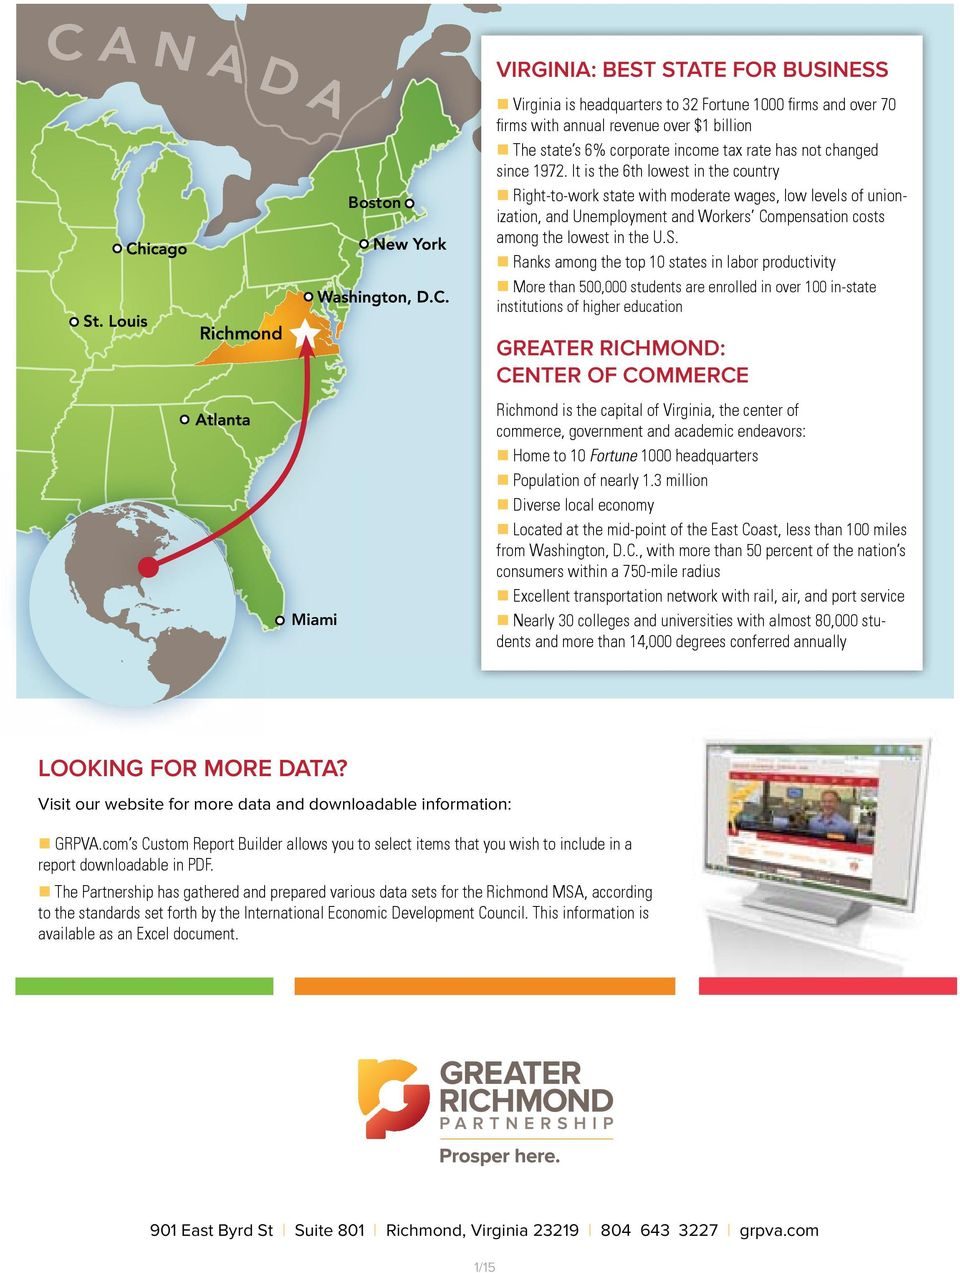 n anks among the top 10 states in labor productivity n More than 500,000 students are enrolled in over 100 in-state Boston institutions of higher education ichmond greater ichmond: Center of Commerce